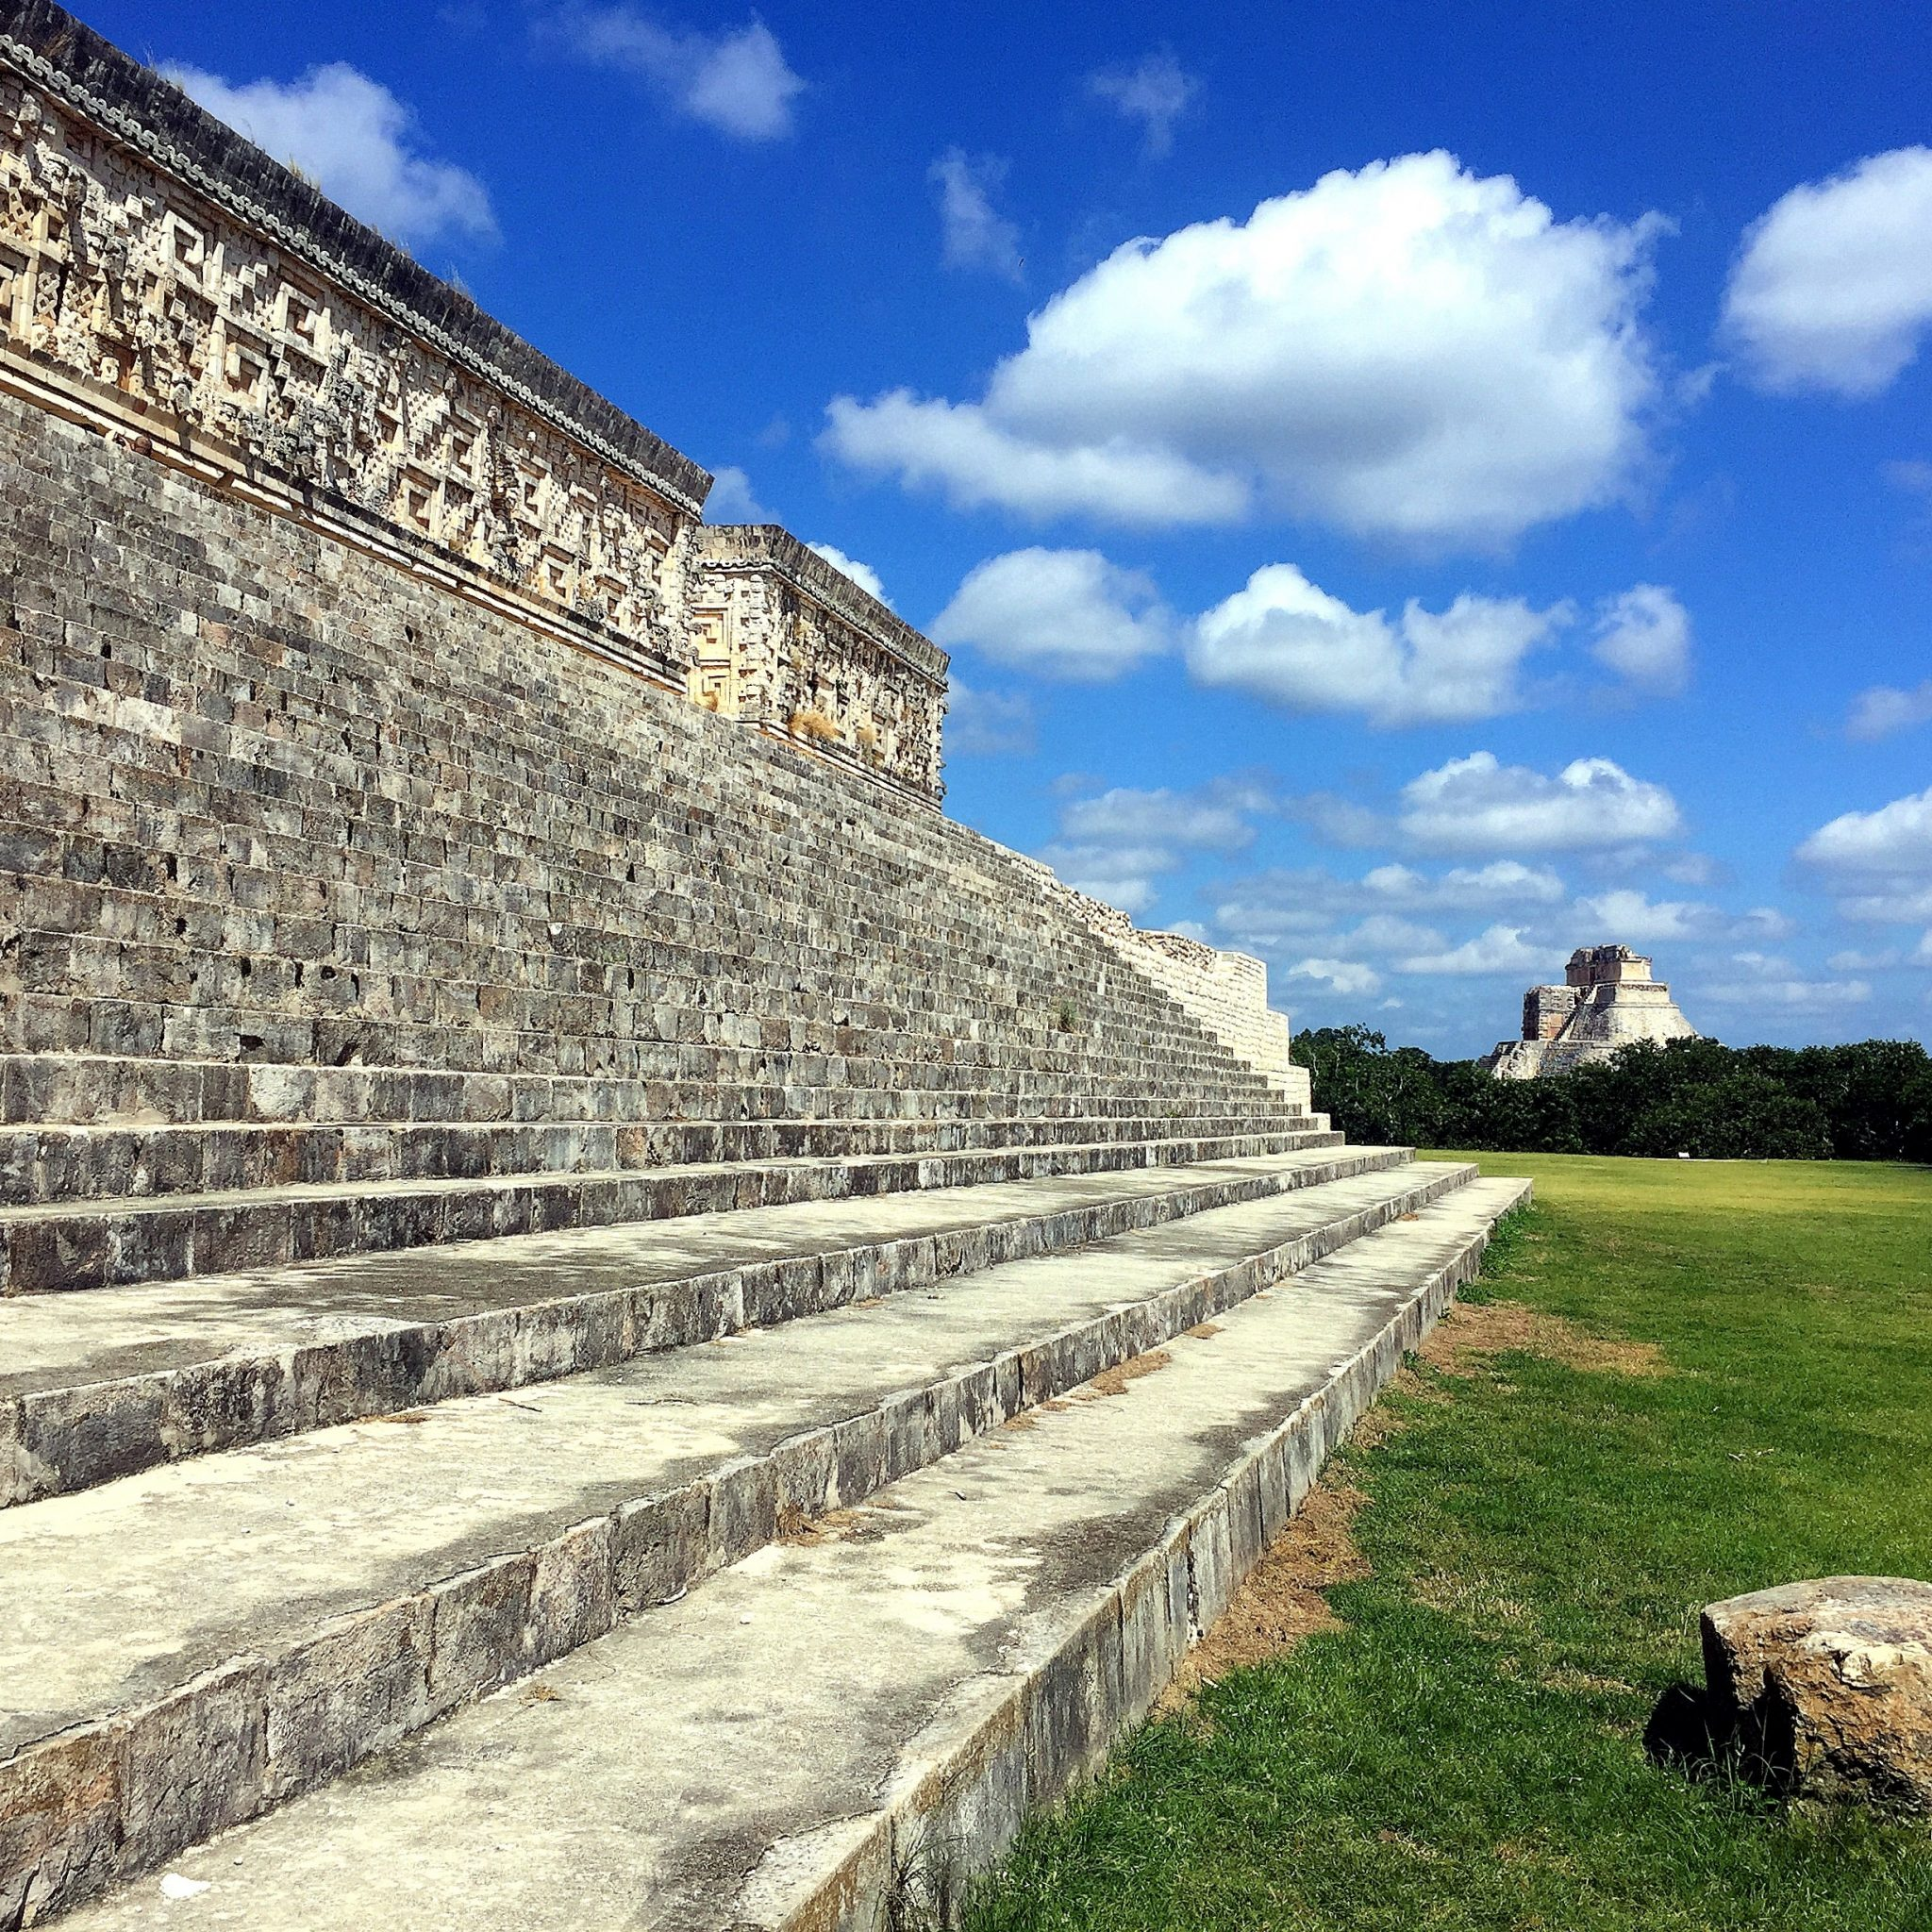 Uxmal makes you feel as if you were taken back in time to when Mayan ceremonies were still taking place.